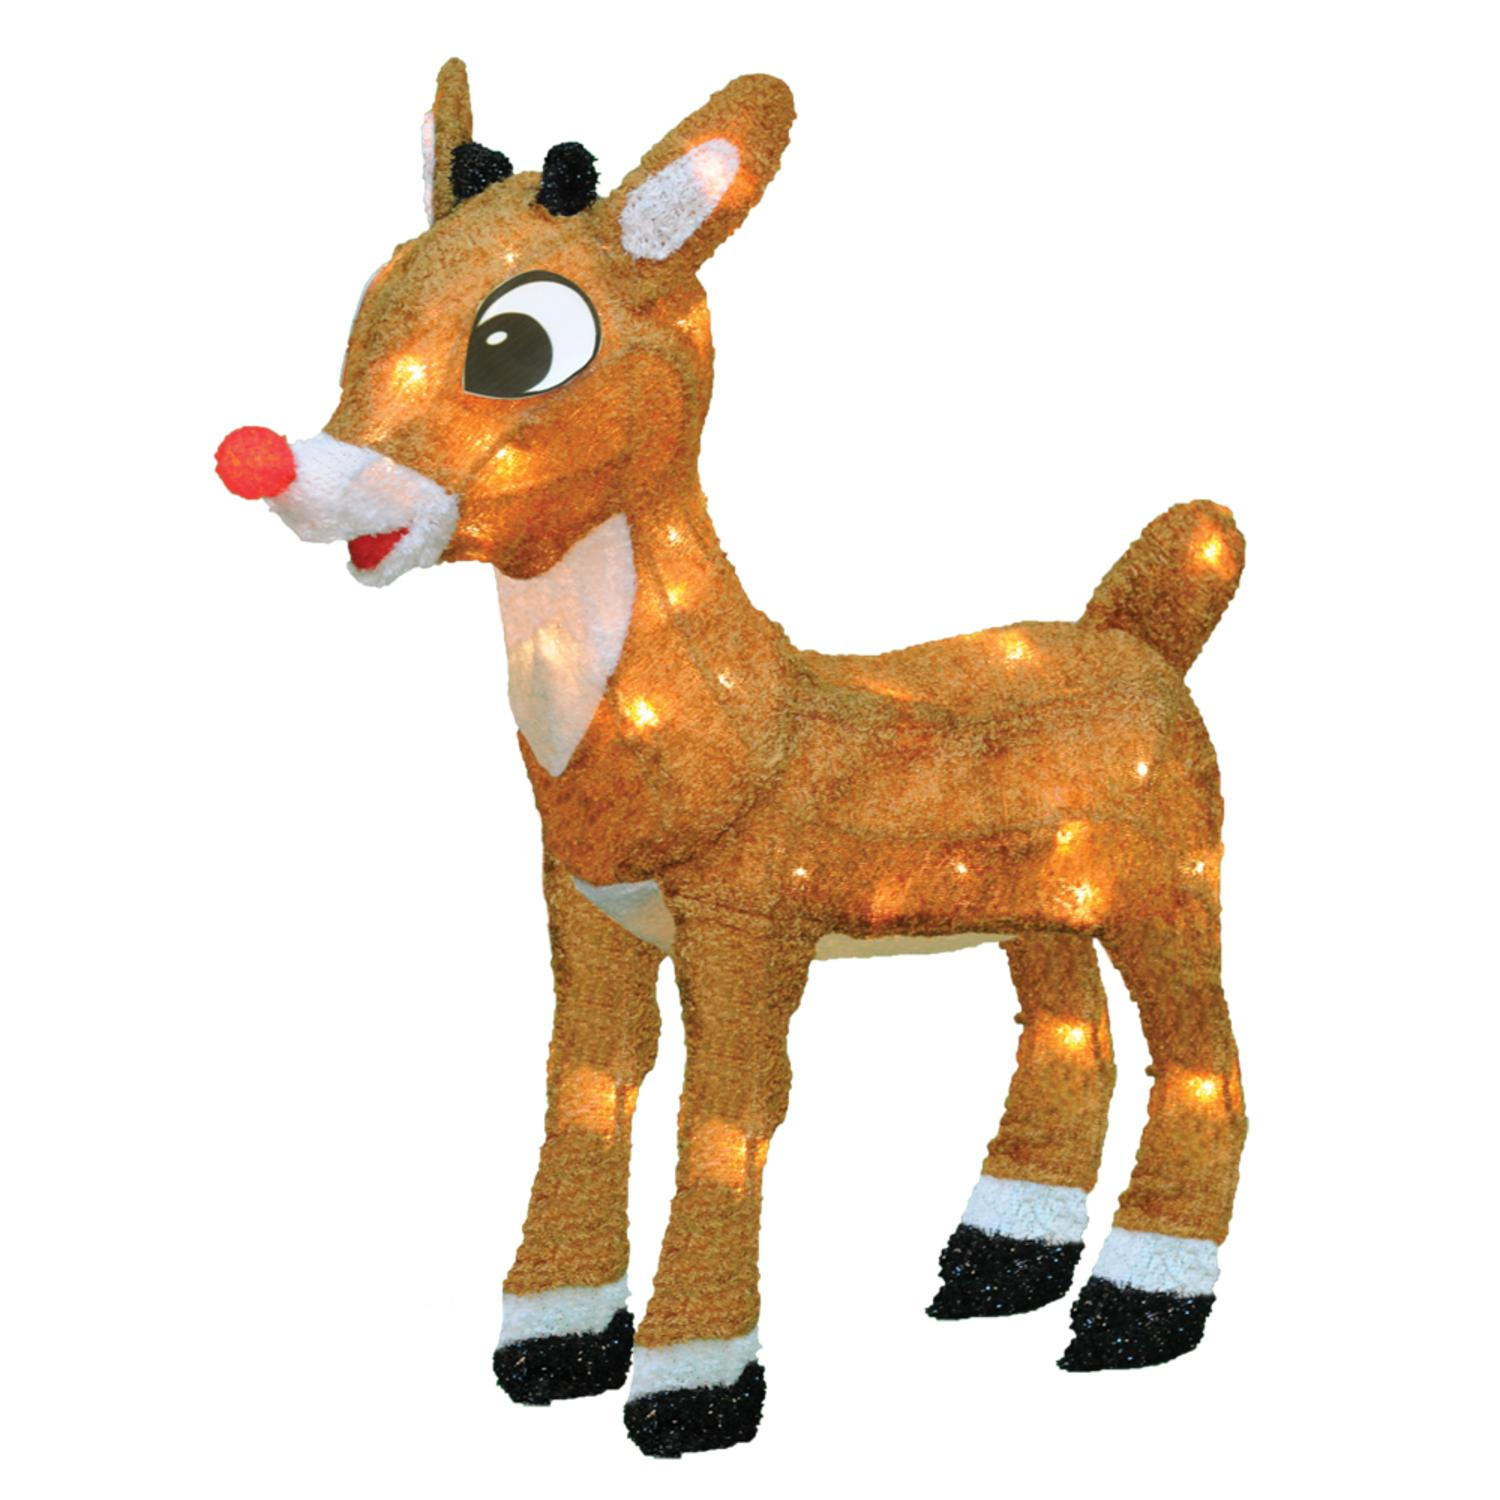 "18"" Pre-Lit Rudolph the Red-Nosed Reindeer Christmas Yard Art Decoration - Clear Lights"